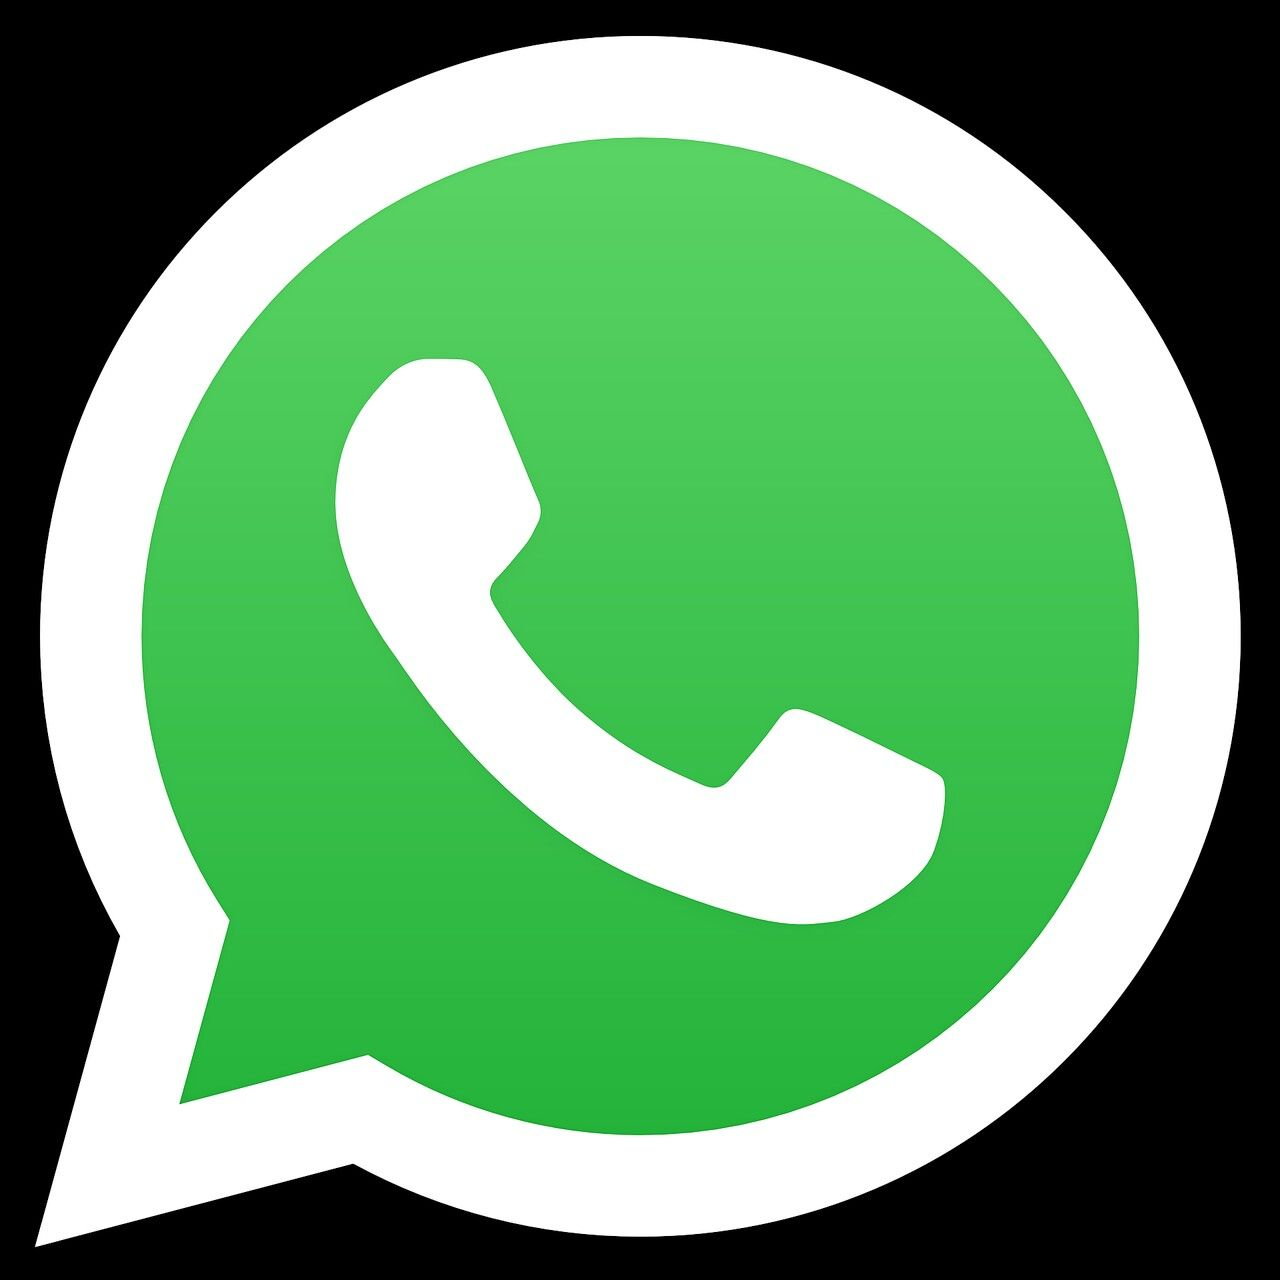 Some interesting facts about whatsapp you don't know